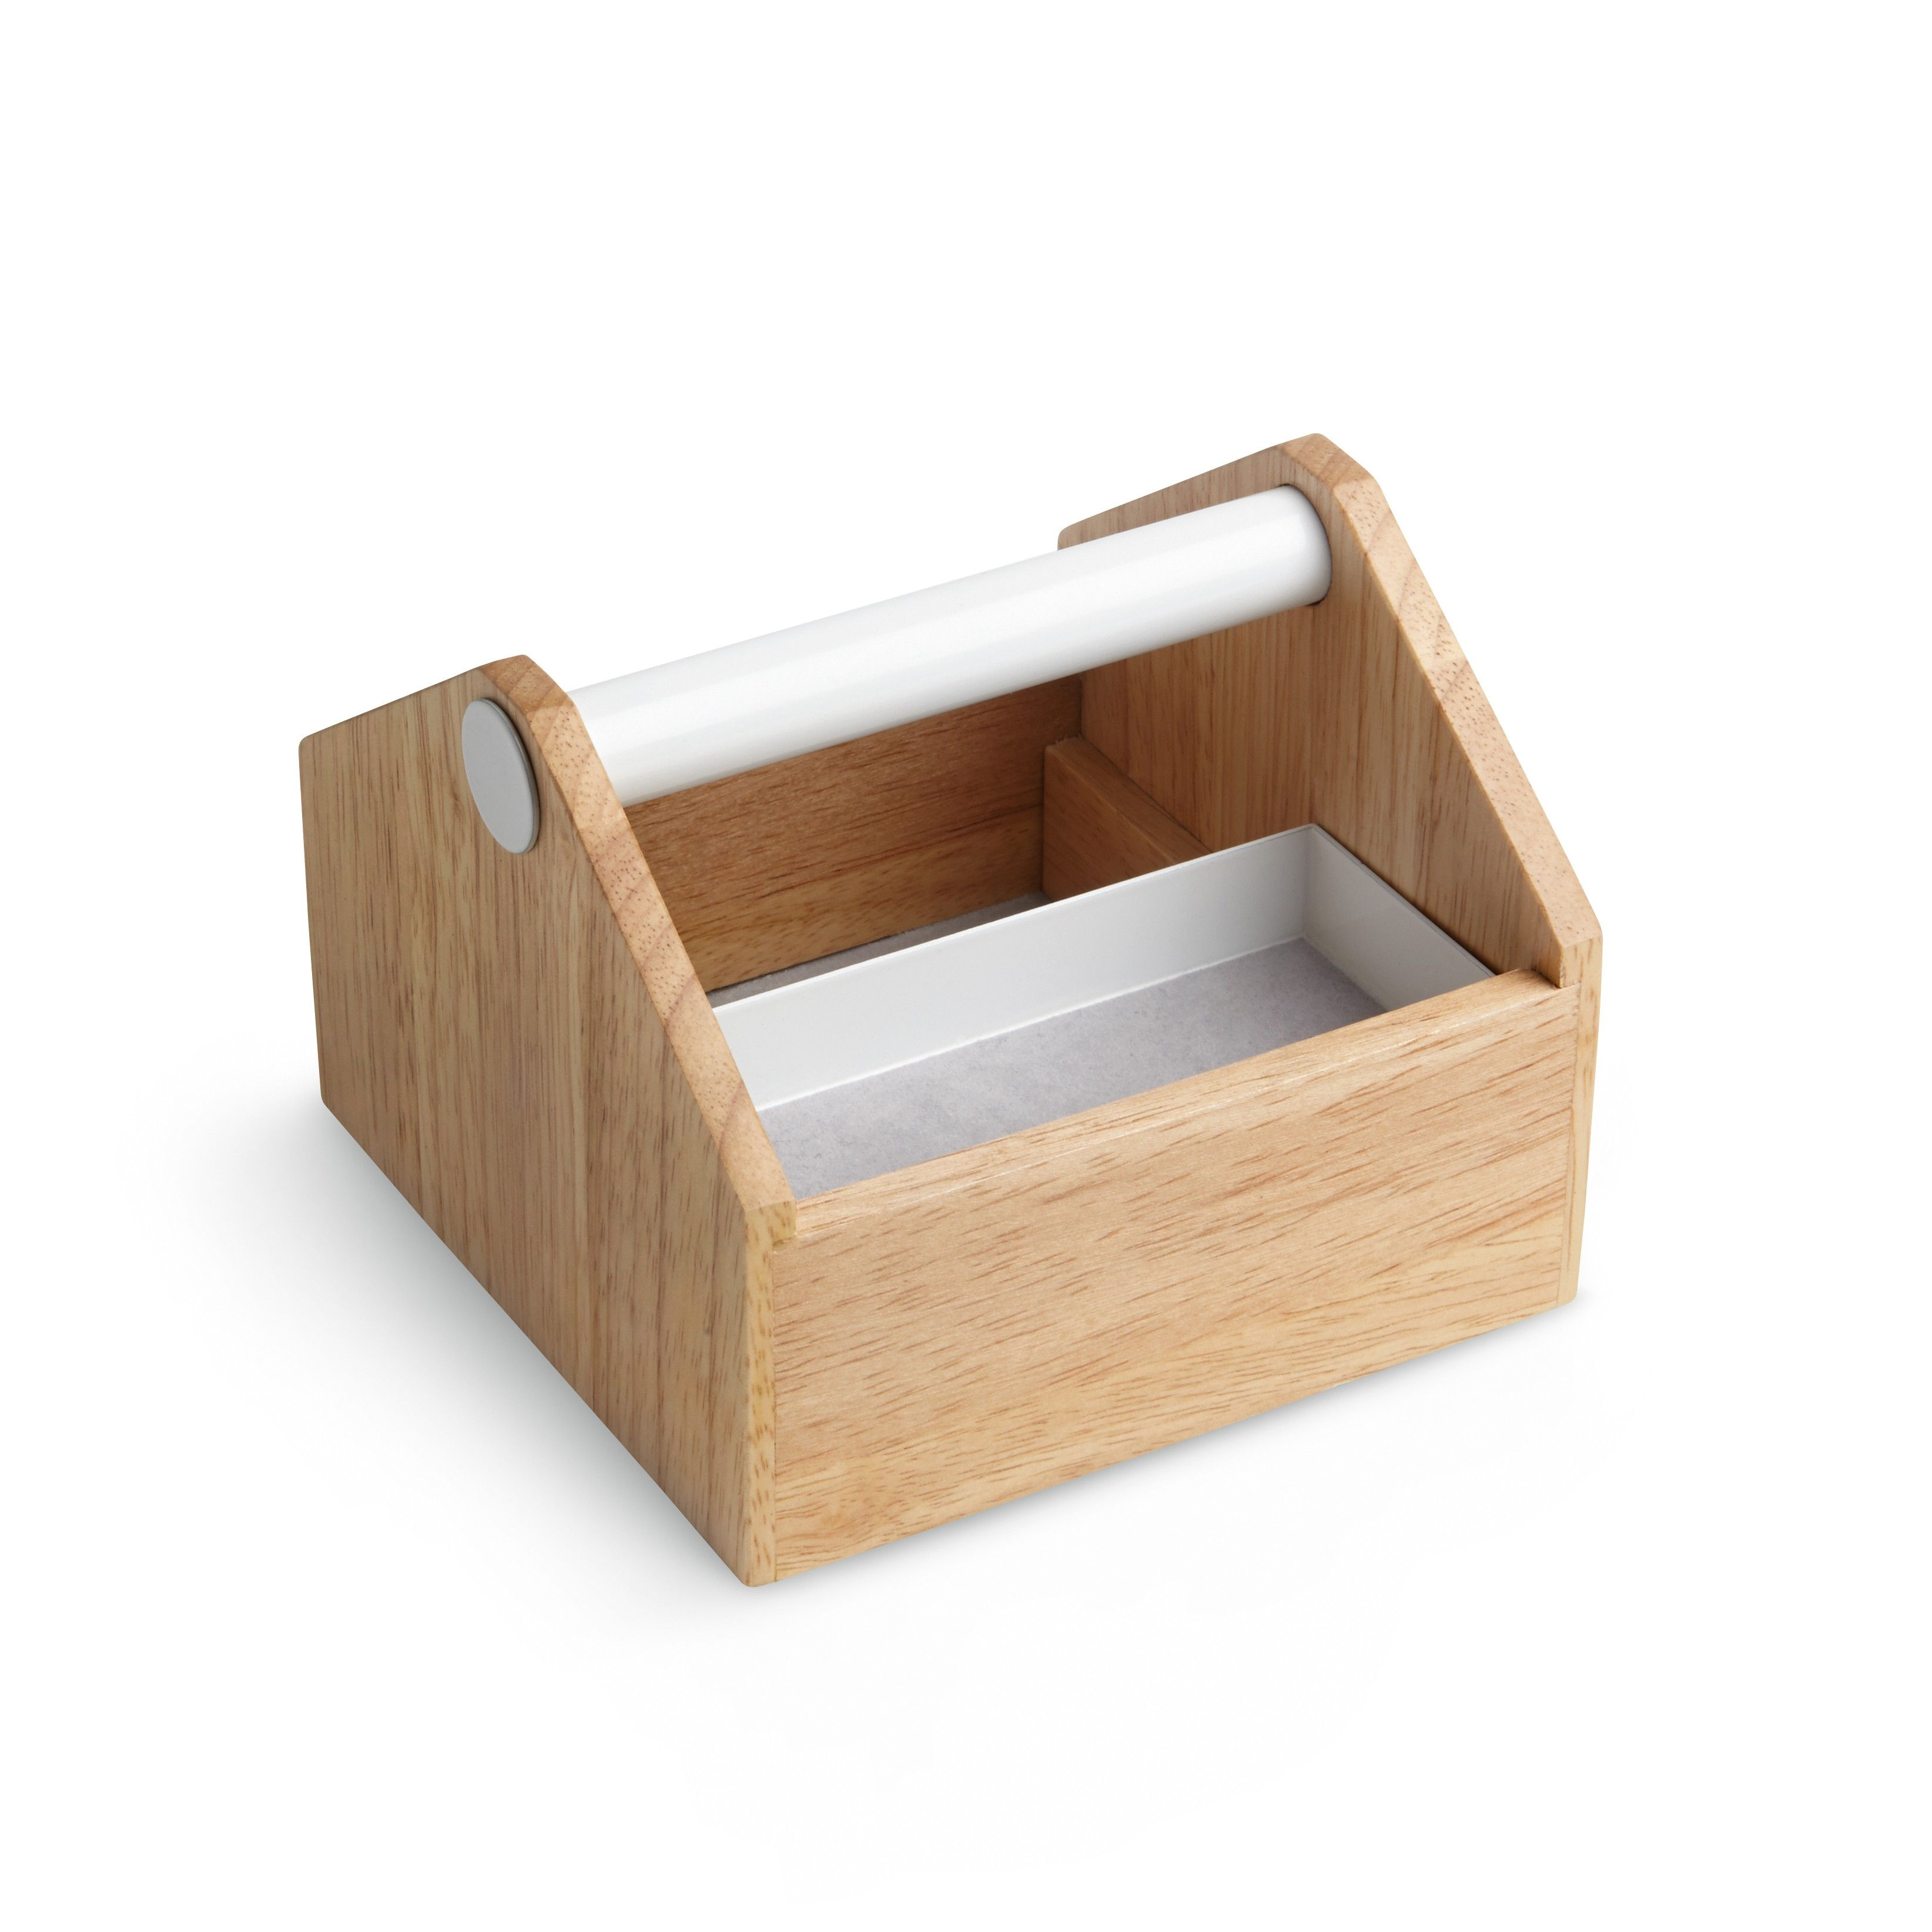 TOTO SMALL STORAGE BOX - perfect size for small items that often get lost- and great to hold nail polish or craft gear